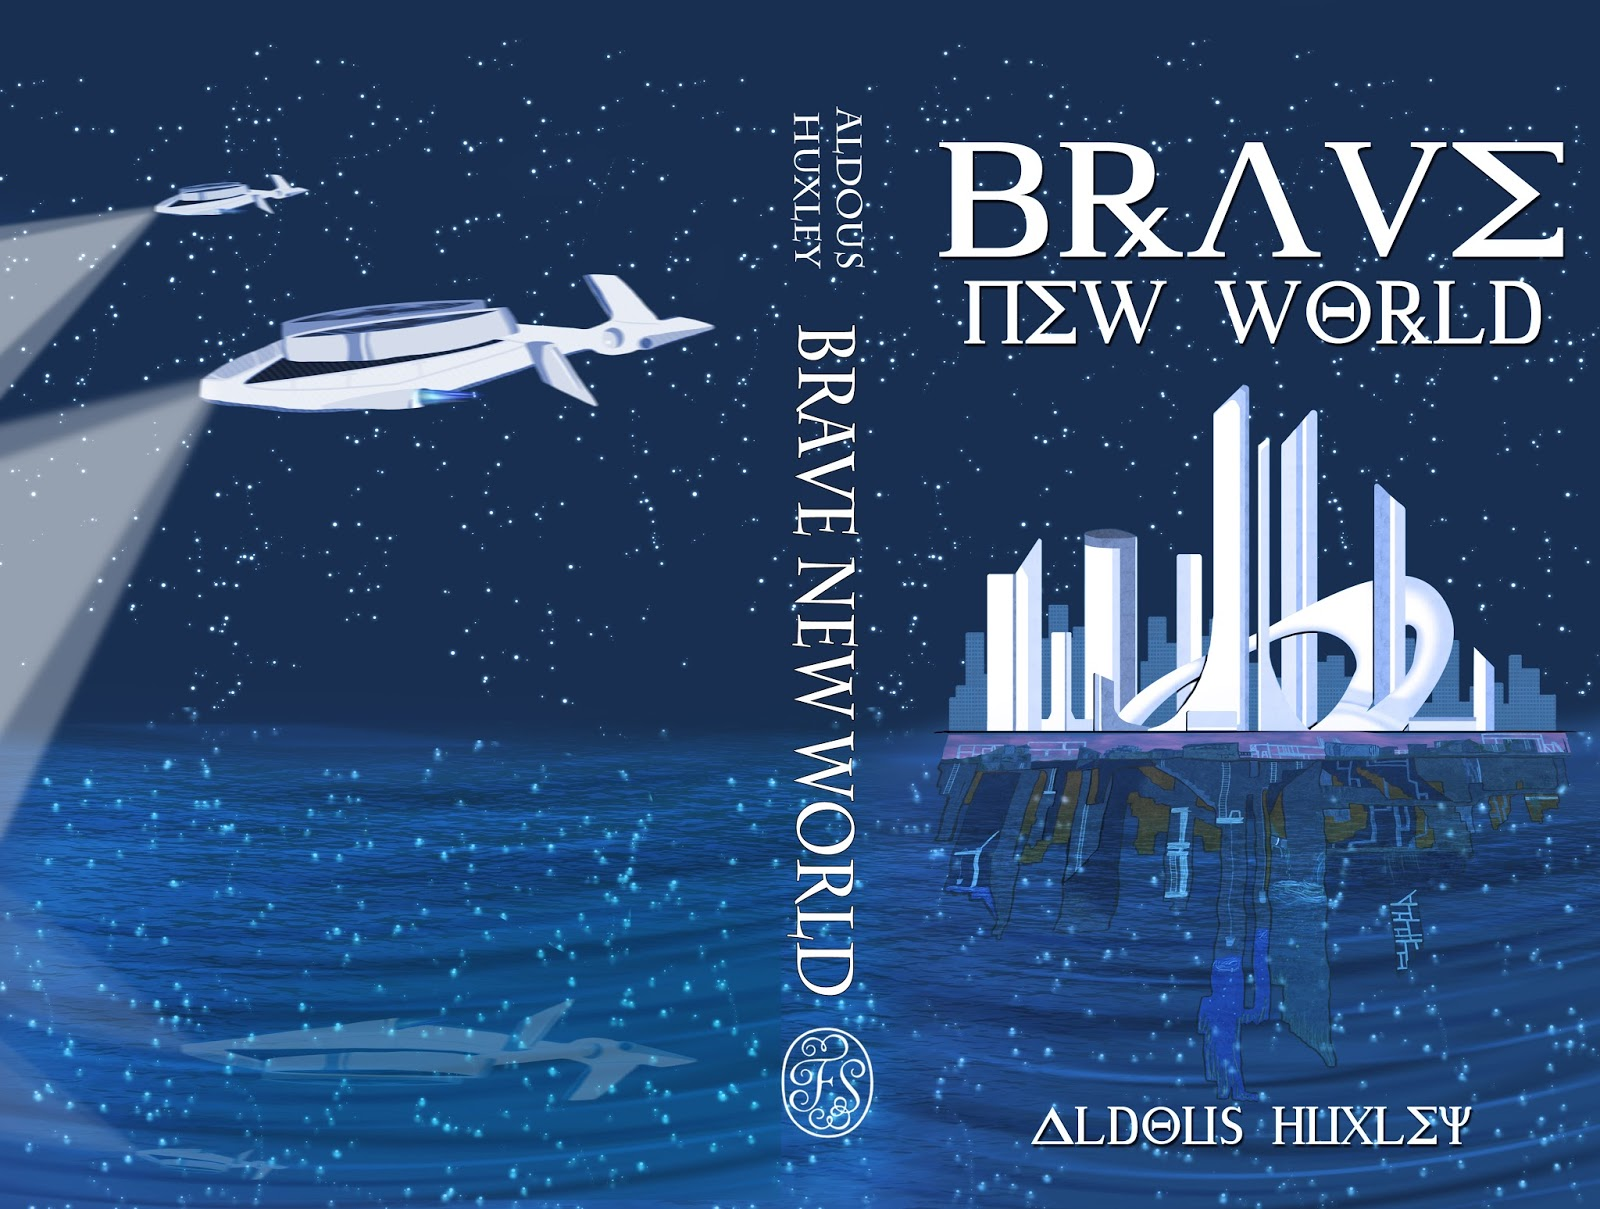 brave new world Short fan film about a special agent sent through time by the leaders of the drug-fueled utopia seen in brave new world to present day usa to find something he runs into one of the locals and gunfight ensues.